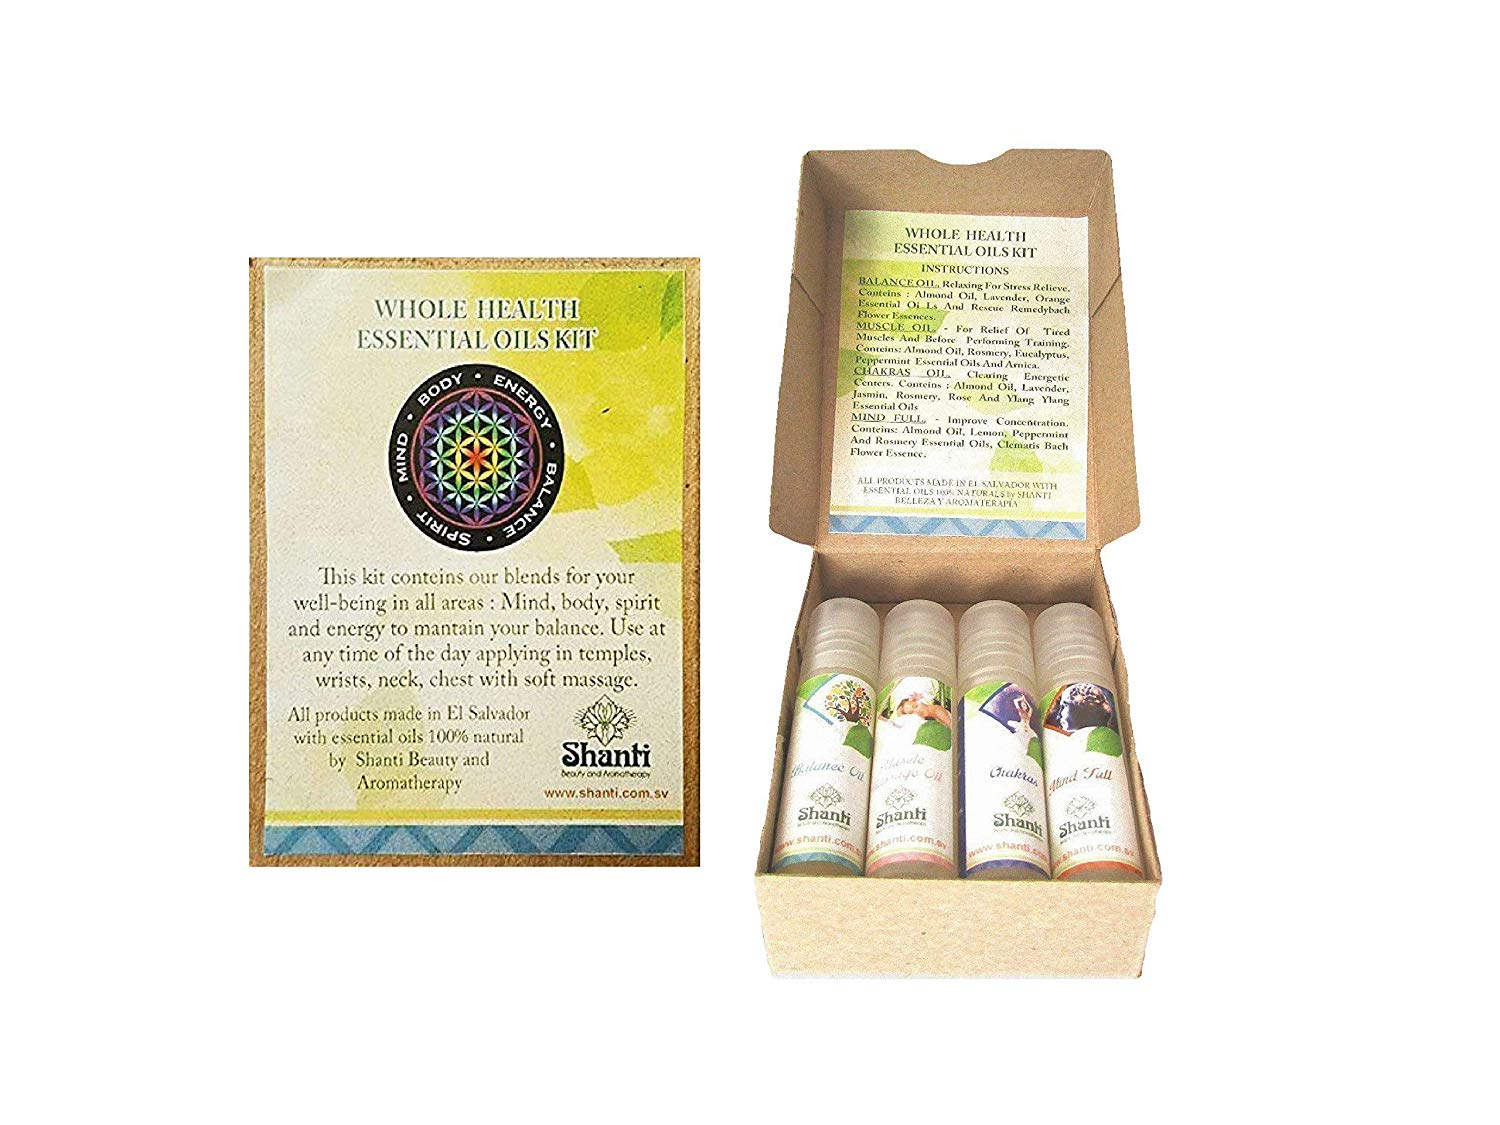 Essential Oil Blends HOLISTIC Kit (Set Of 4): Pocket Size For Travel,Made With Natural Organic Essential Oils - For Relaxation, balance, mental clarity And Muscle pain Relief